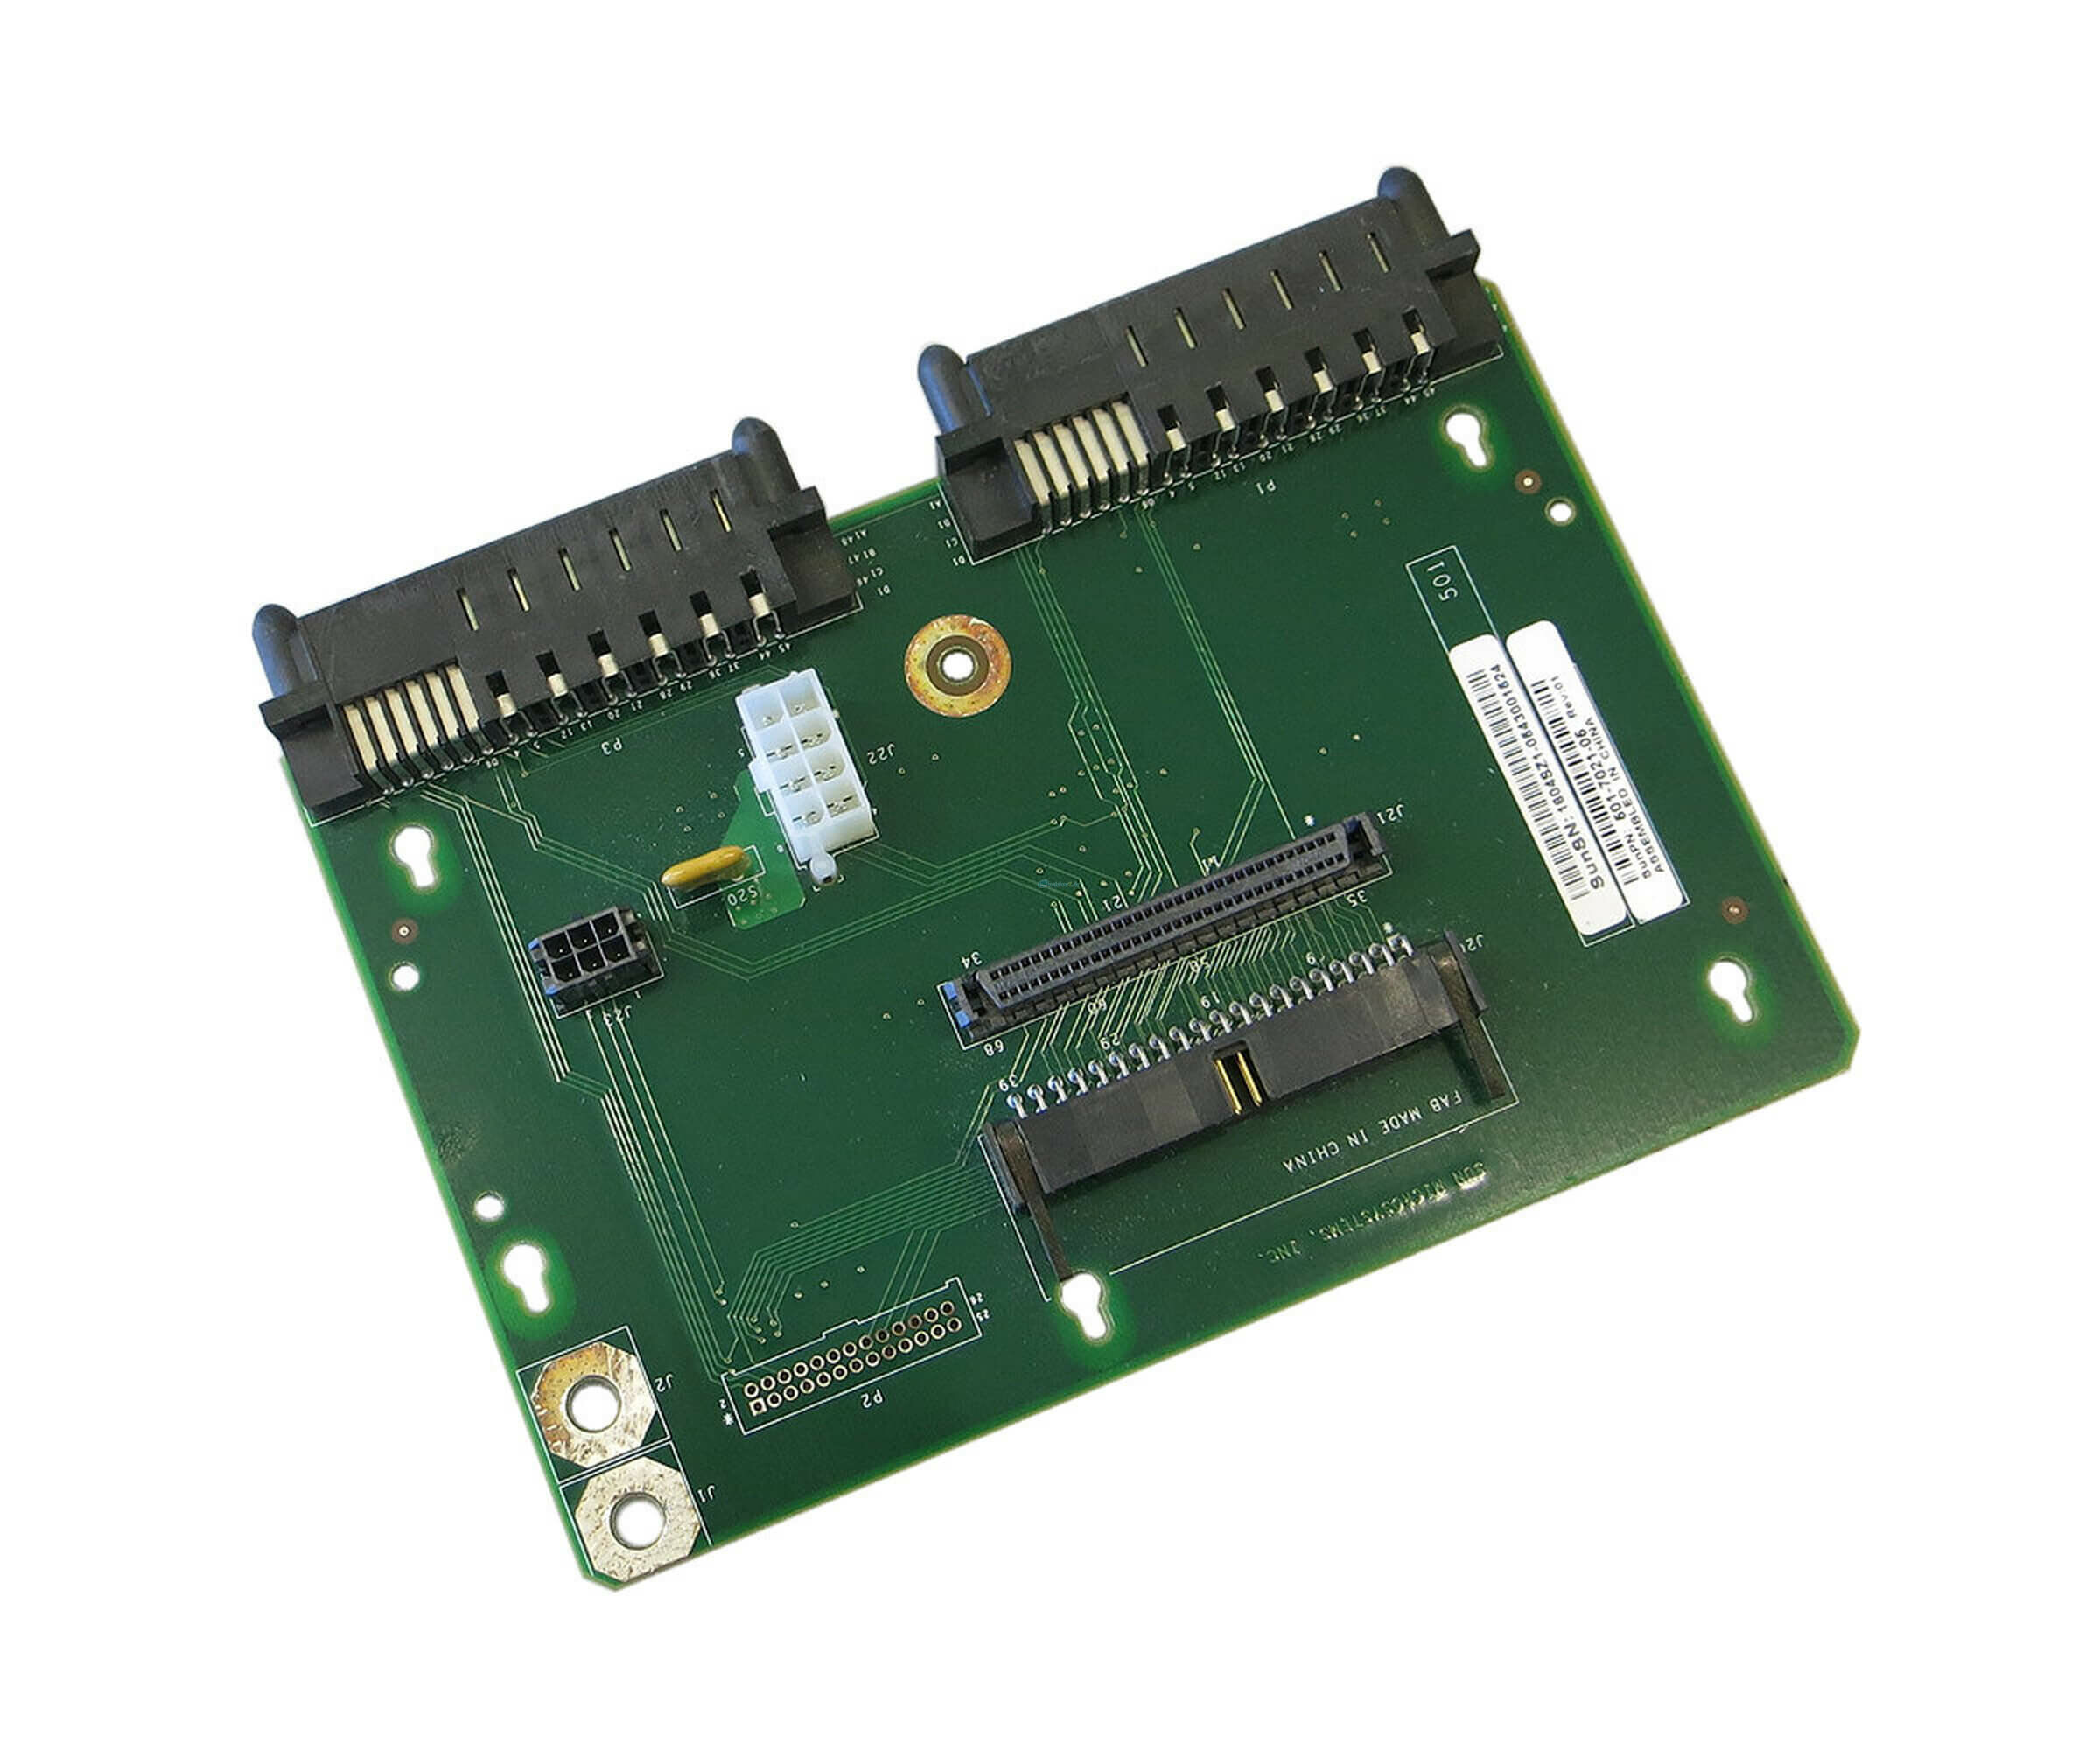 Sun - Power Distribution Board - 501-7021